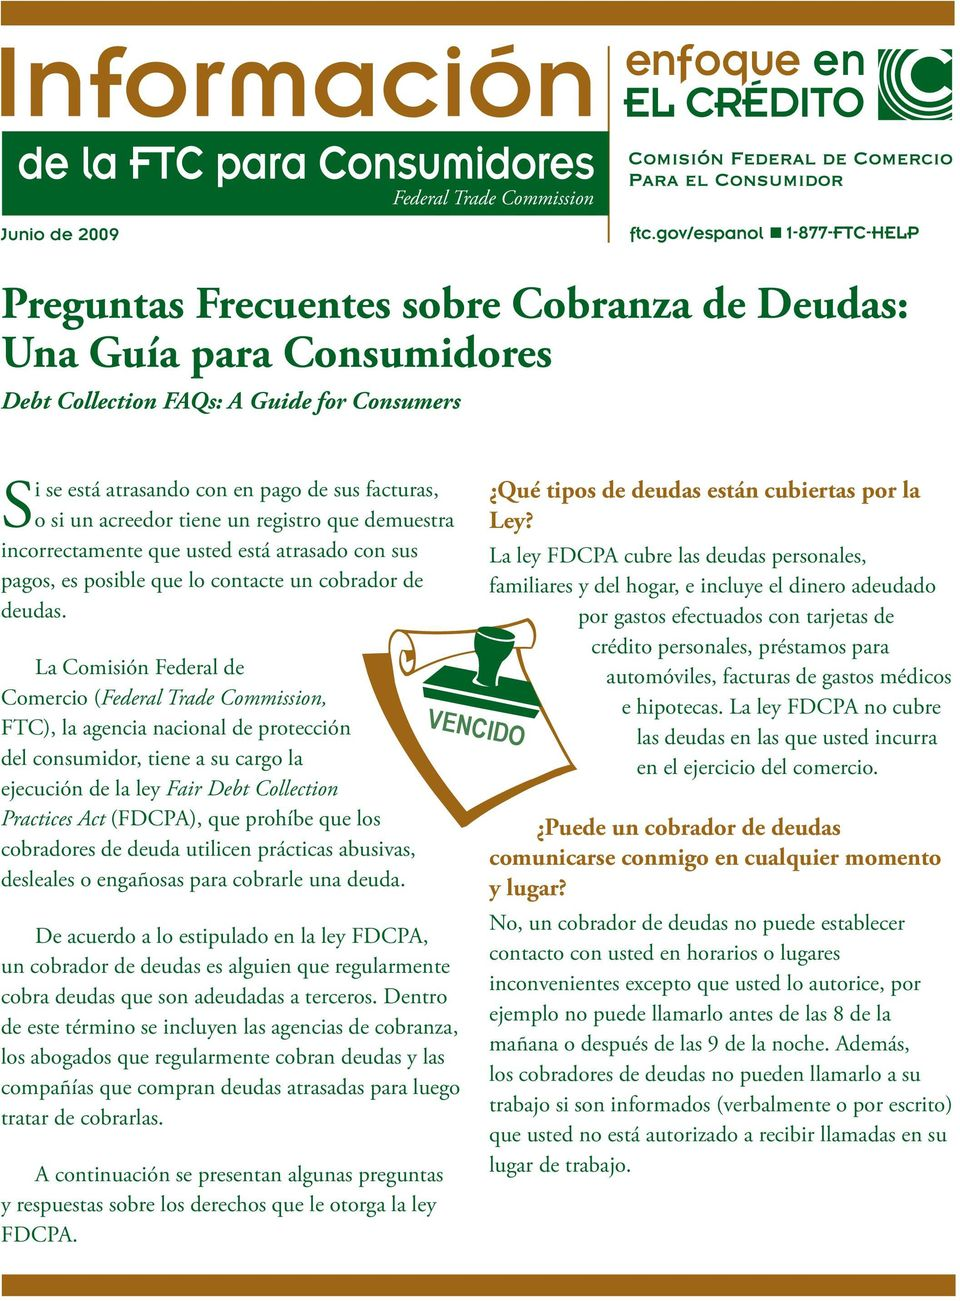 La Comisión Federal de Comercio (Federal Trade Commission, FTC), la agencia nacional de protección del consumidor, tiene a su cargo la ejecución de la ley Fair Debt Collection Practices Act (FDCPA),